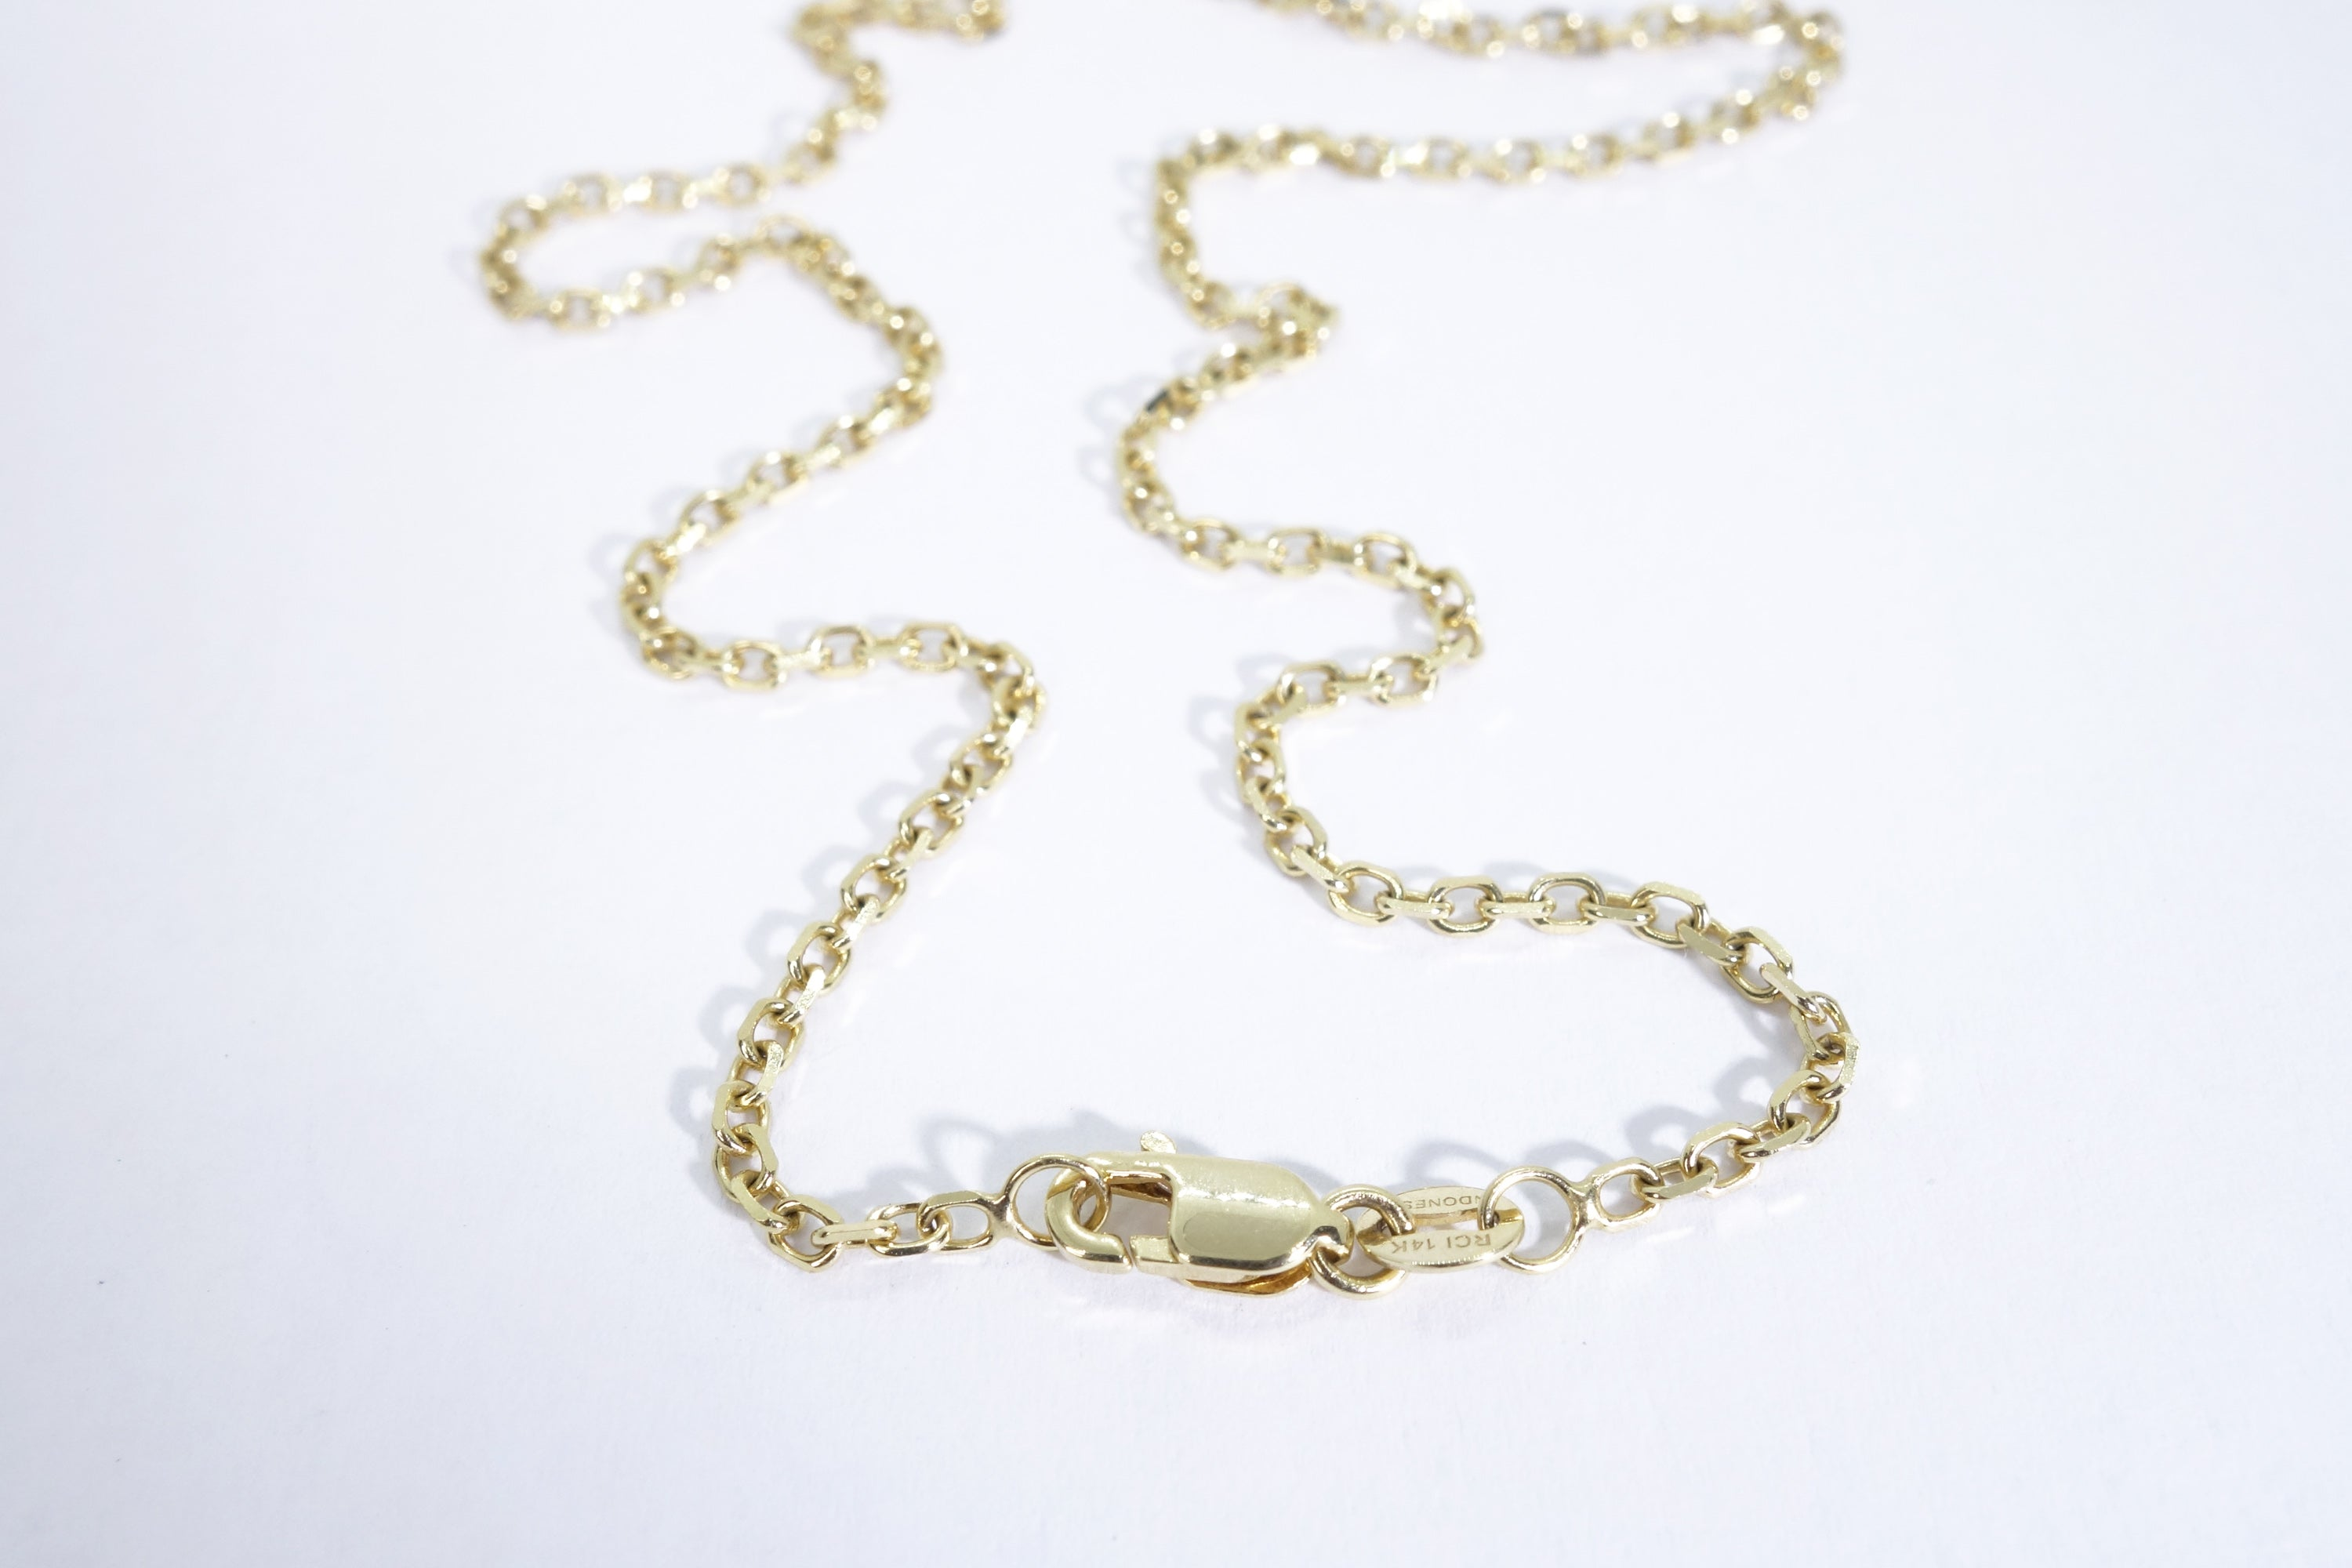 Solomon's Seal Necklace